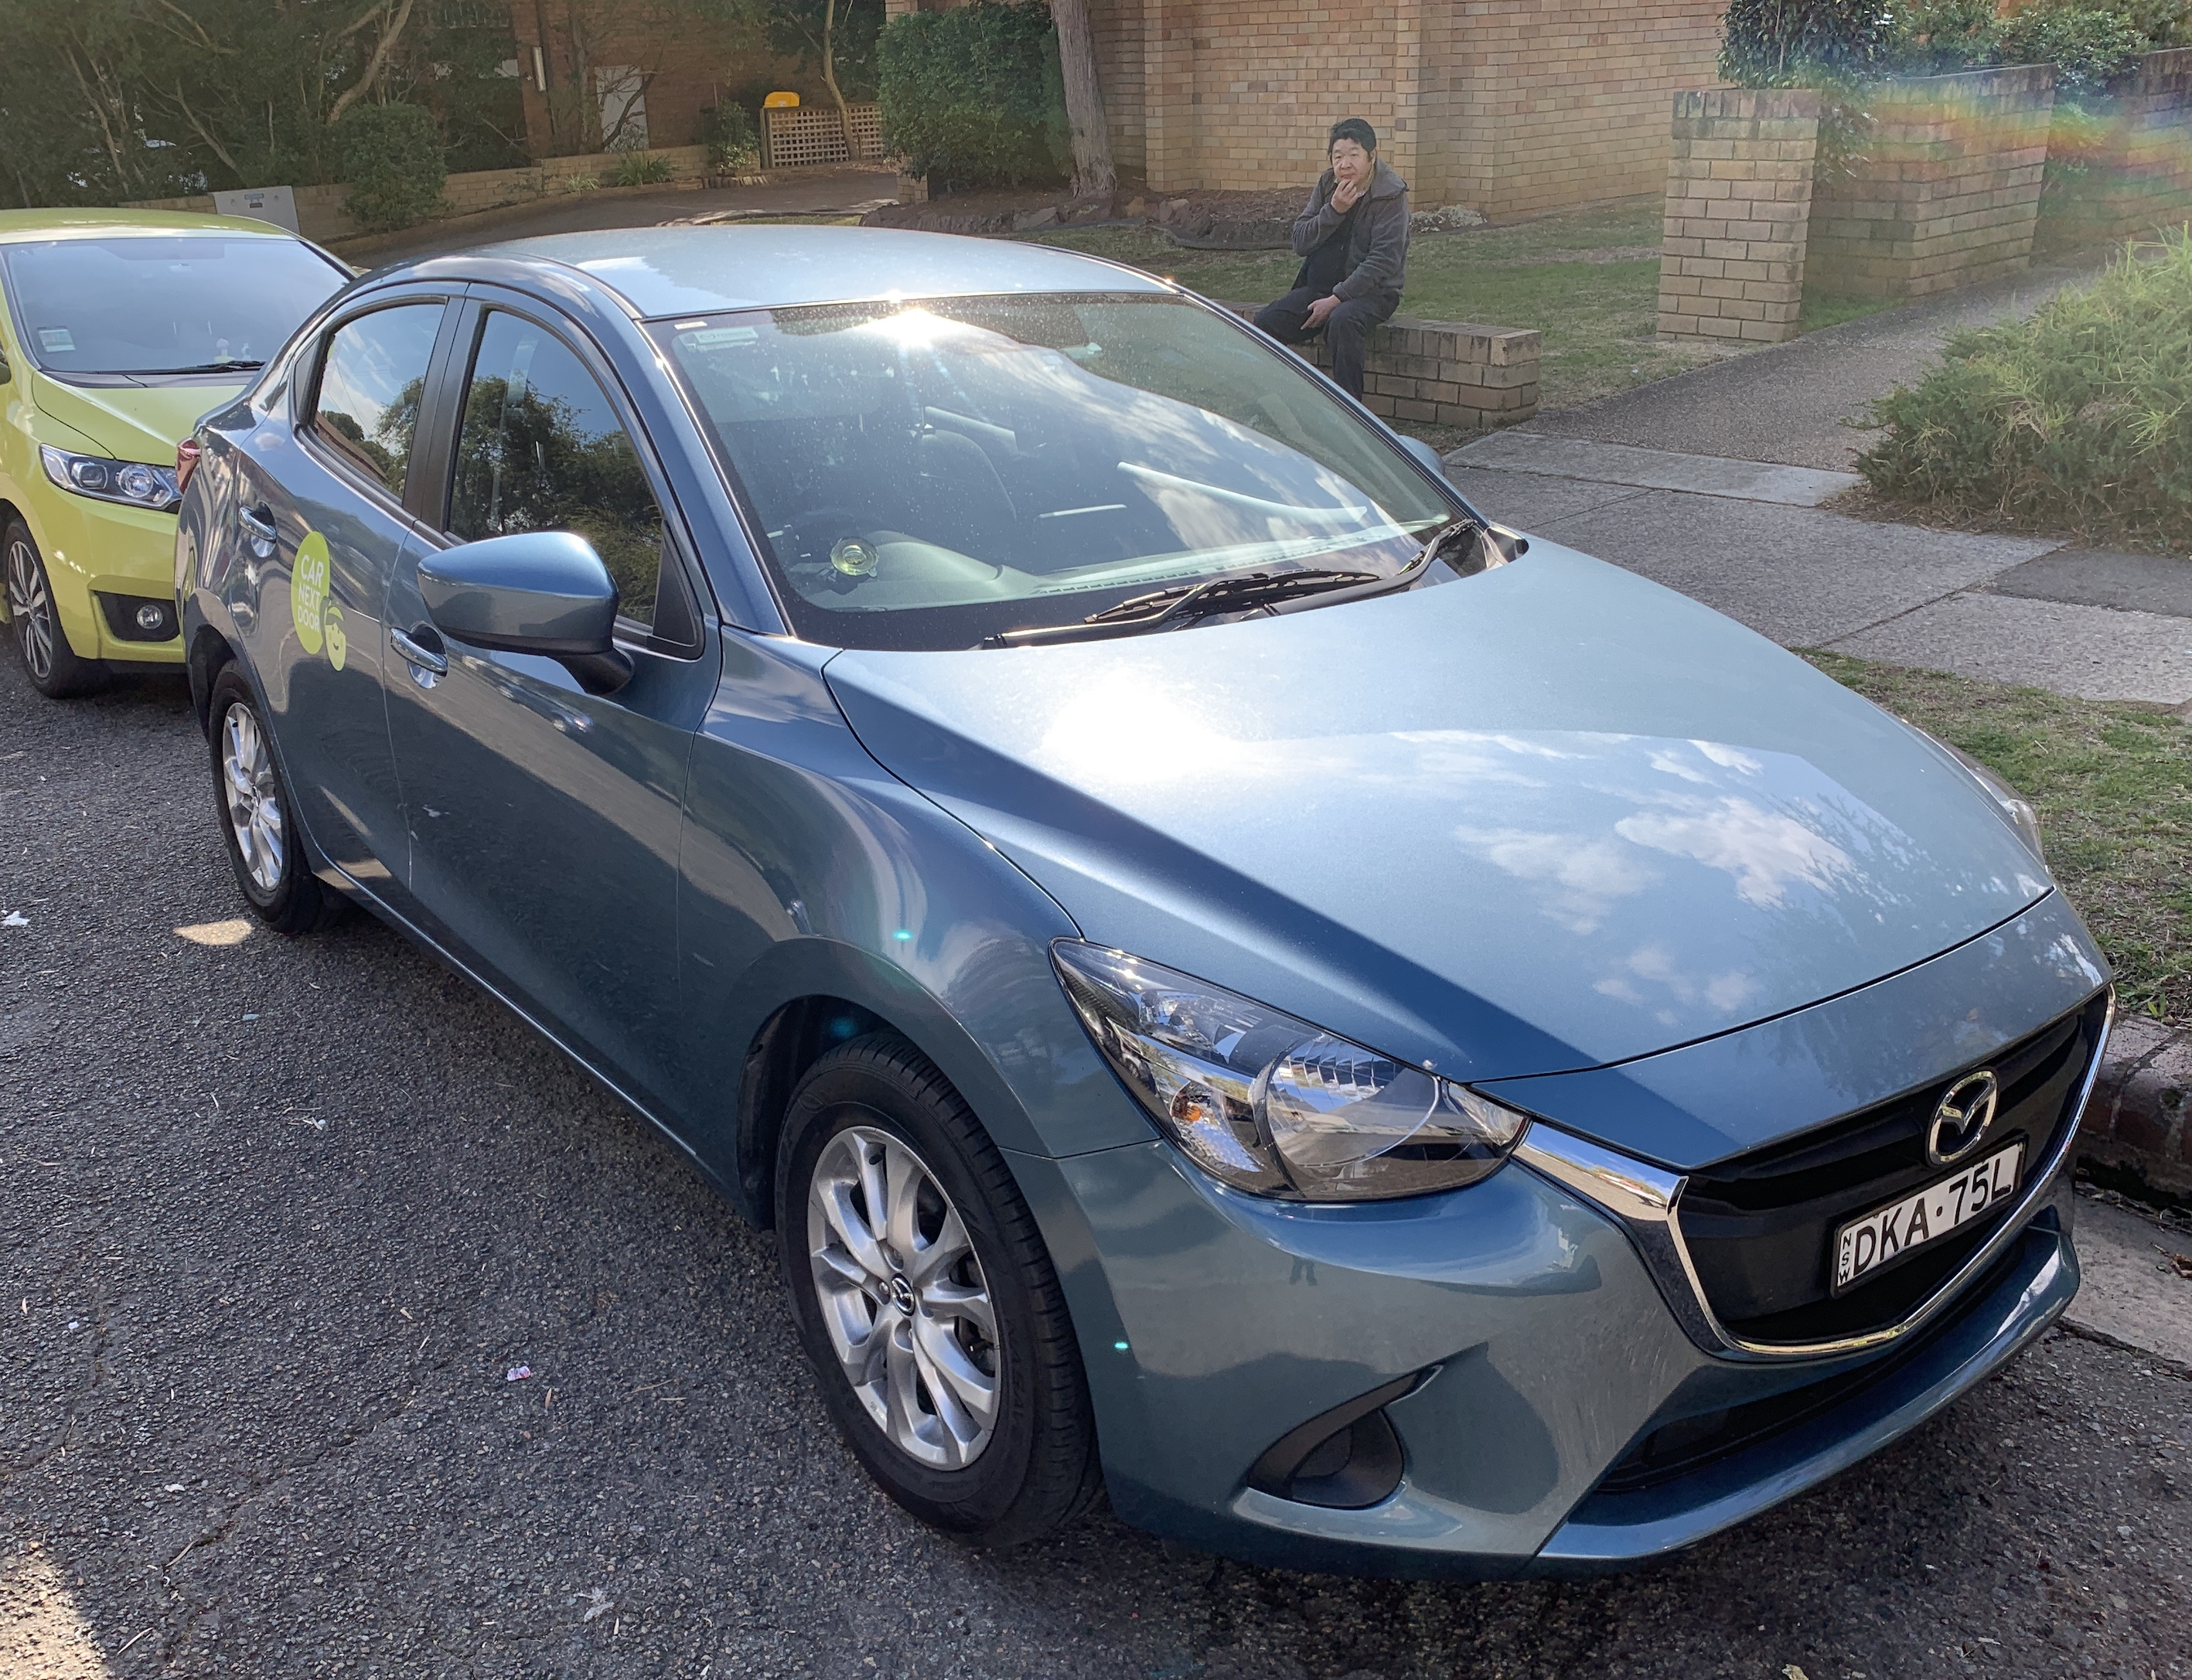 Picture of Xiaojue's 2016 Mazda 2